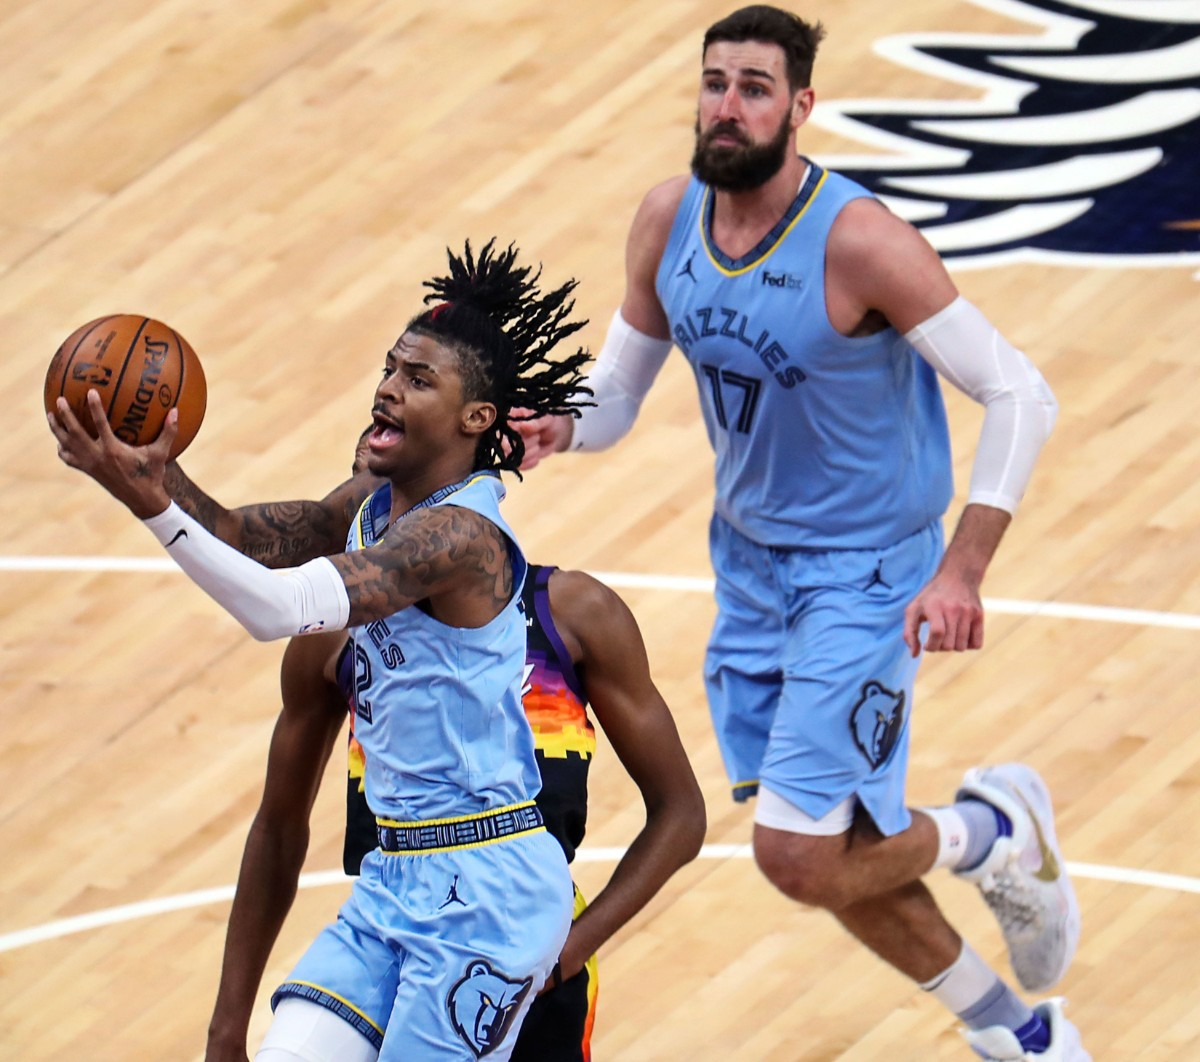 <strong>Memphis Grizzlies guard Ja Morant (12) lays the ball up during a Feb. 20, 2021 game against the Phoenix Suns at the FedExForum.</strong> (Patrick Lantrip/Daily Memphian)